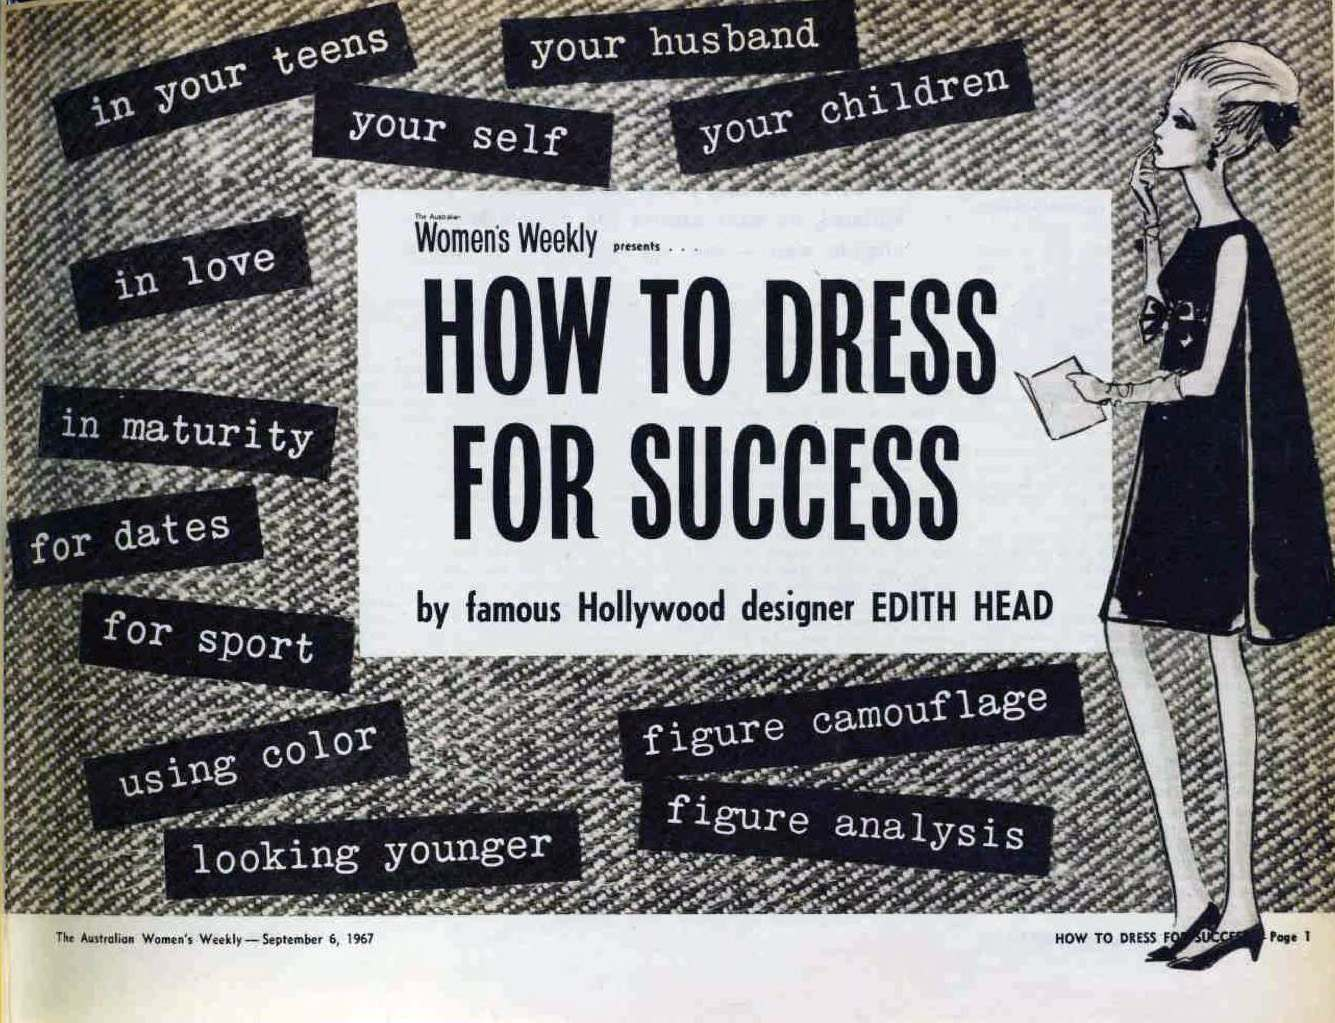 Dress For Success Quotes How To Dress For Success And To Get A Man A 1967 Guide For